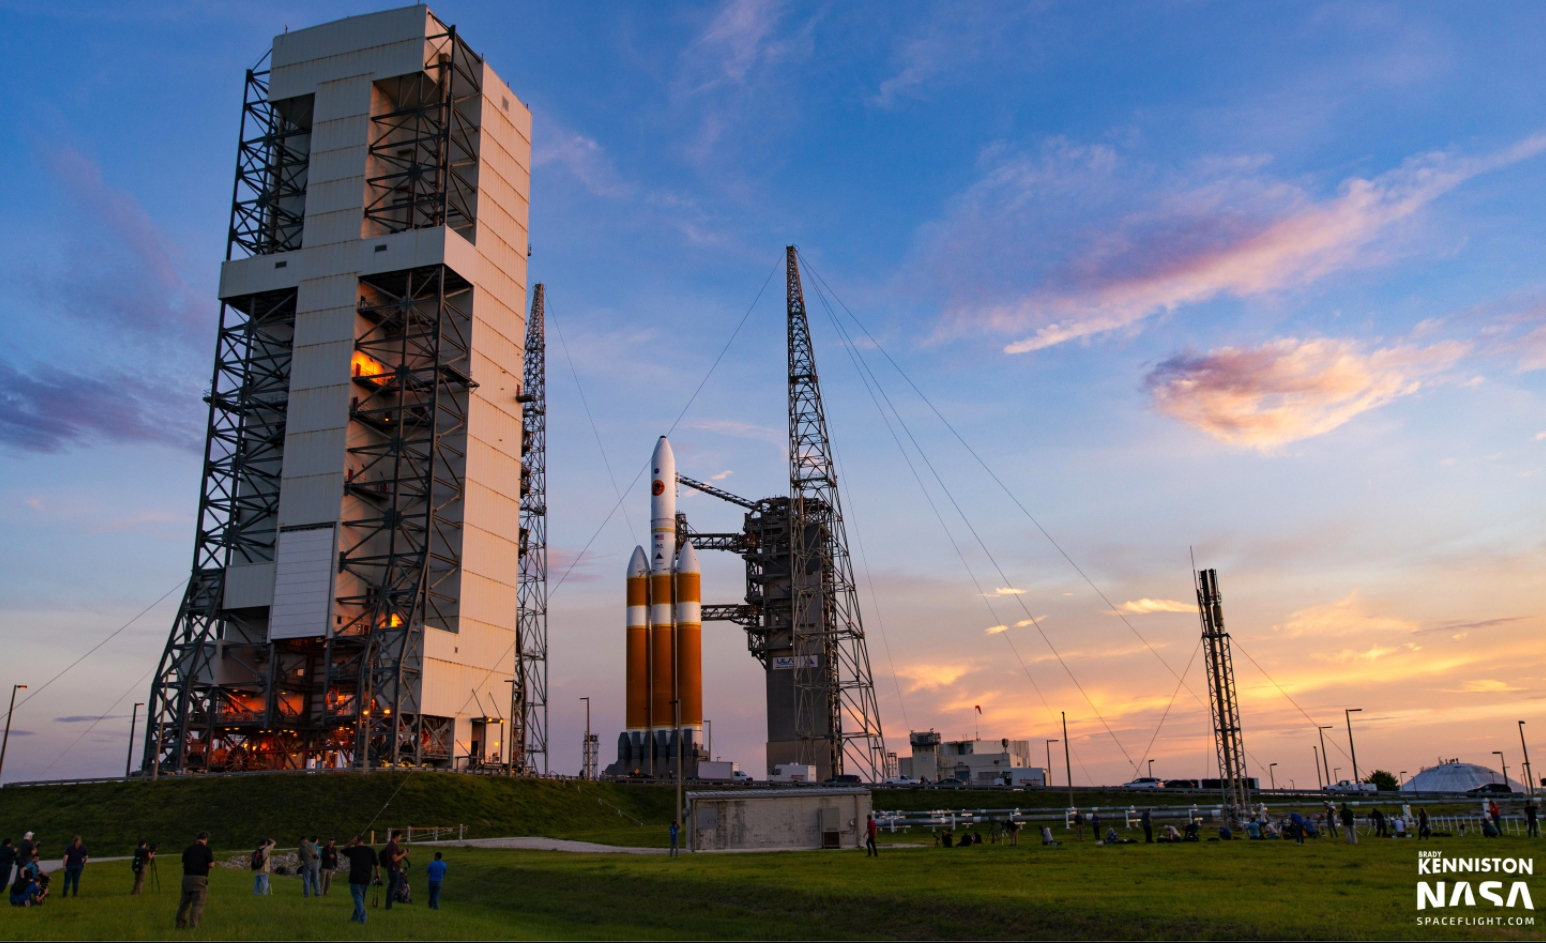 Payload stacked for NROL-44; ULA, SpaceX win NSSL awards